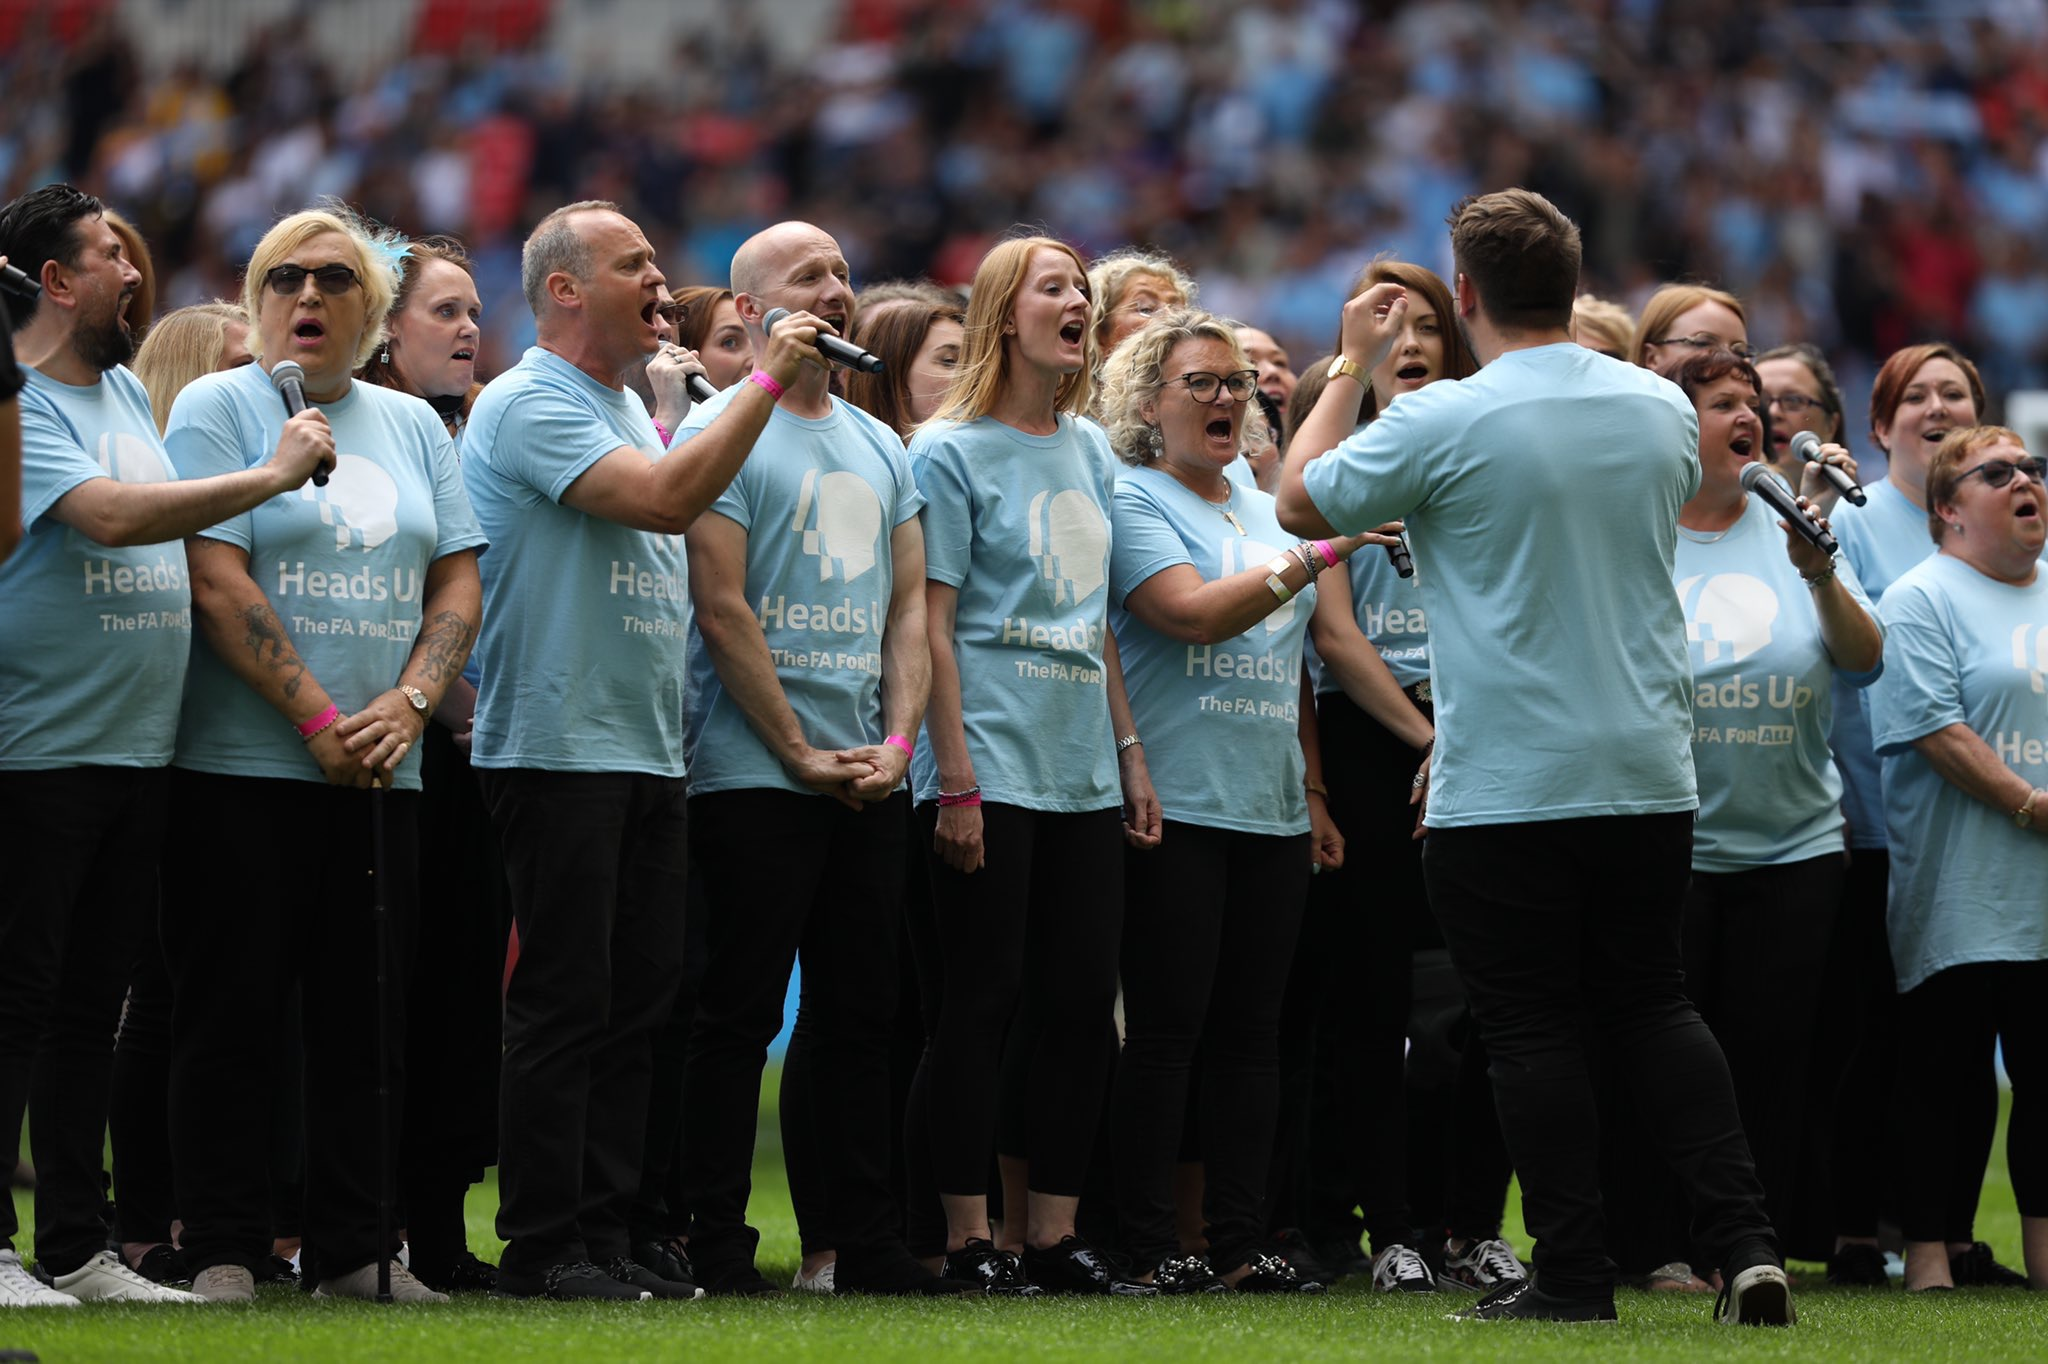 The Bee Vocal Choir, run by Manchester Metropolitan Research Assistant Elaine Craig, seen here performing at Wembley stadium